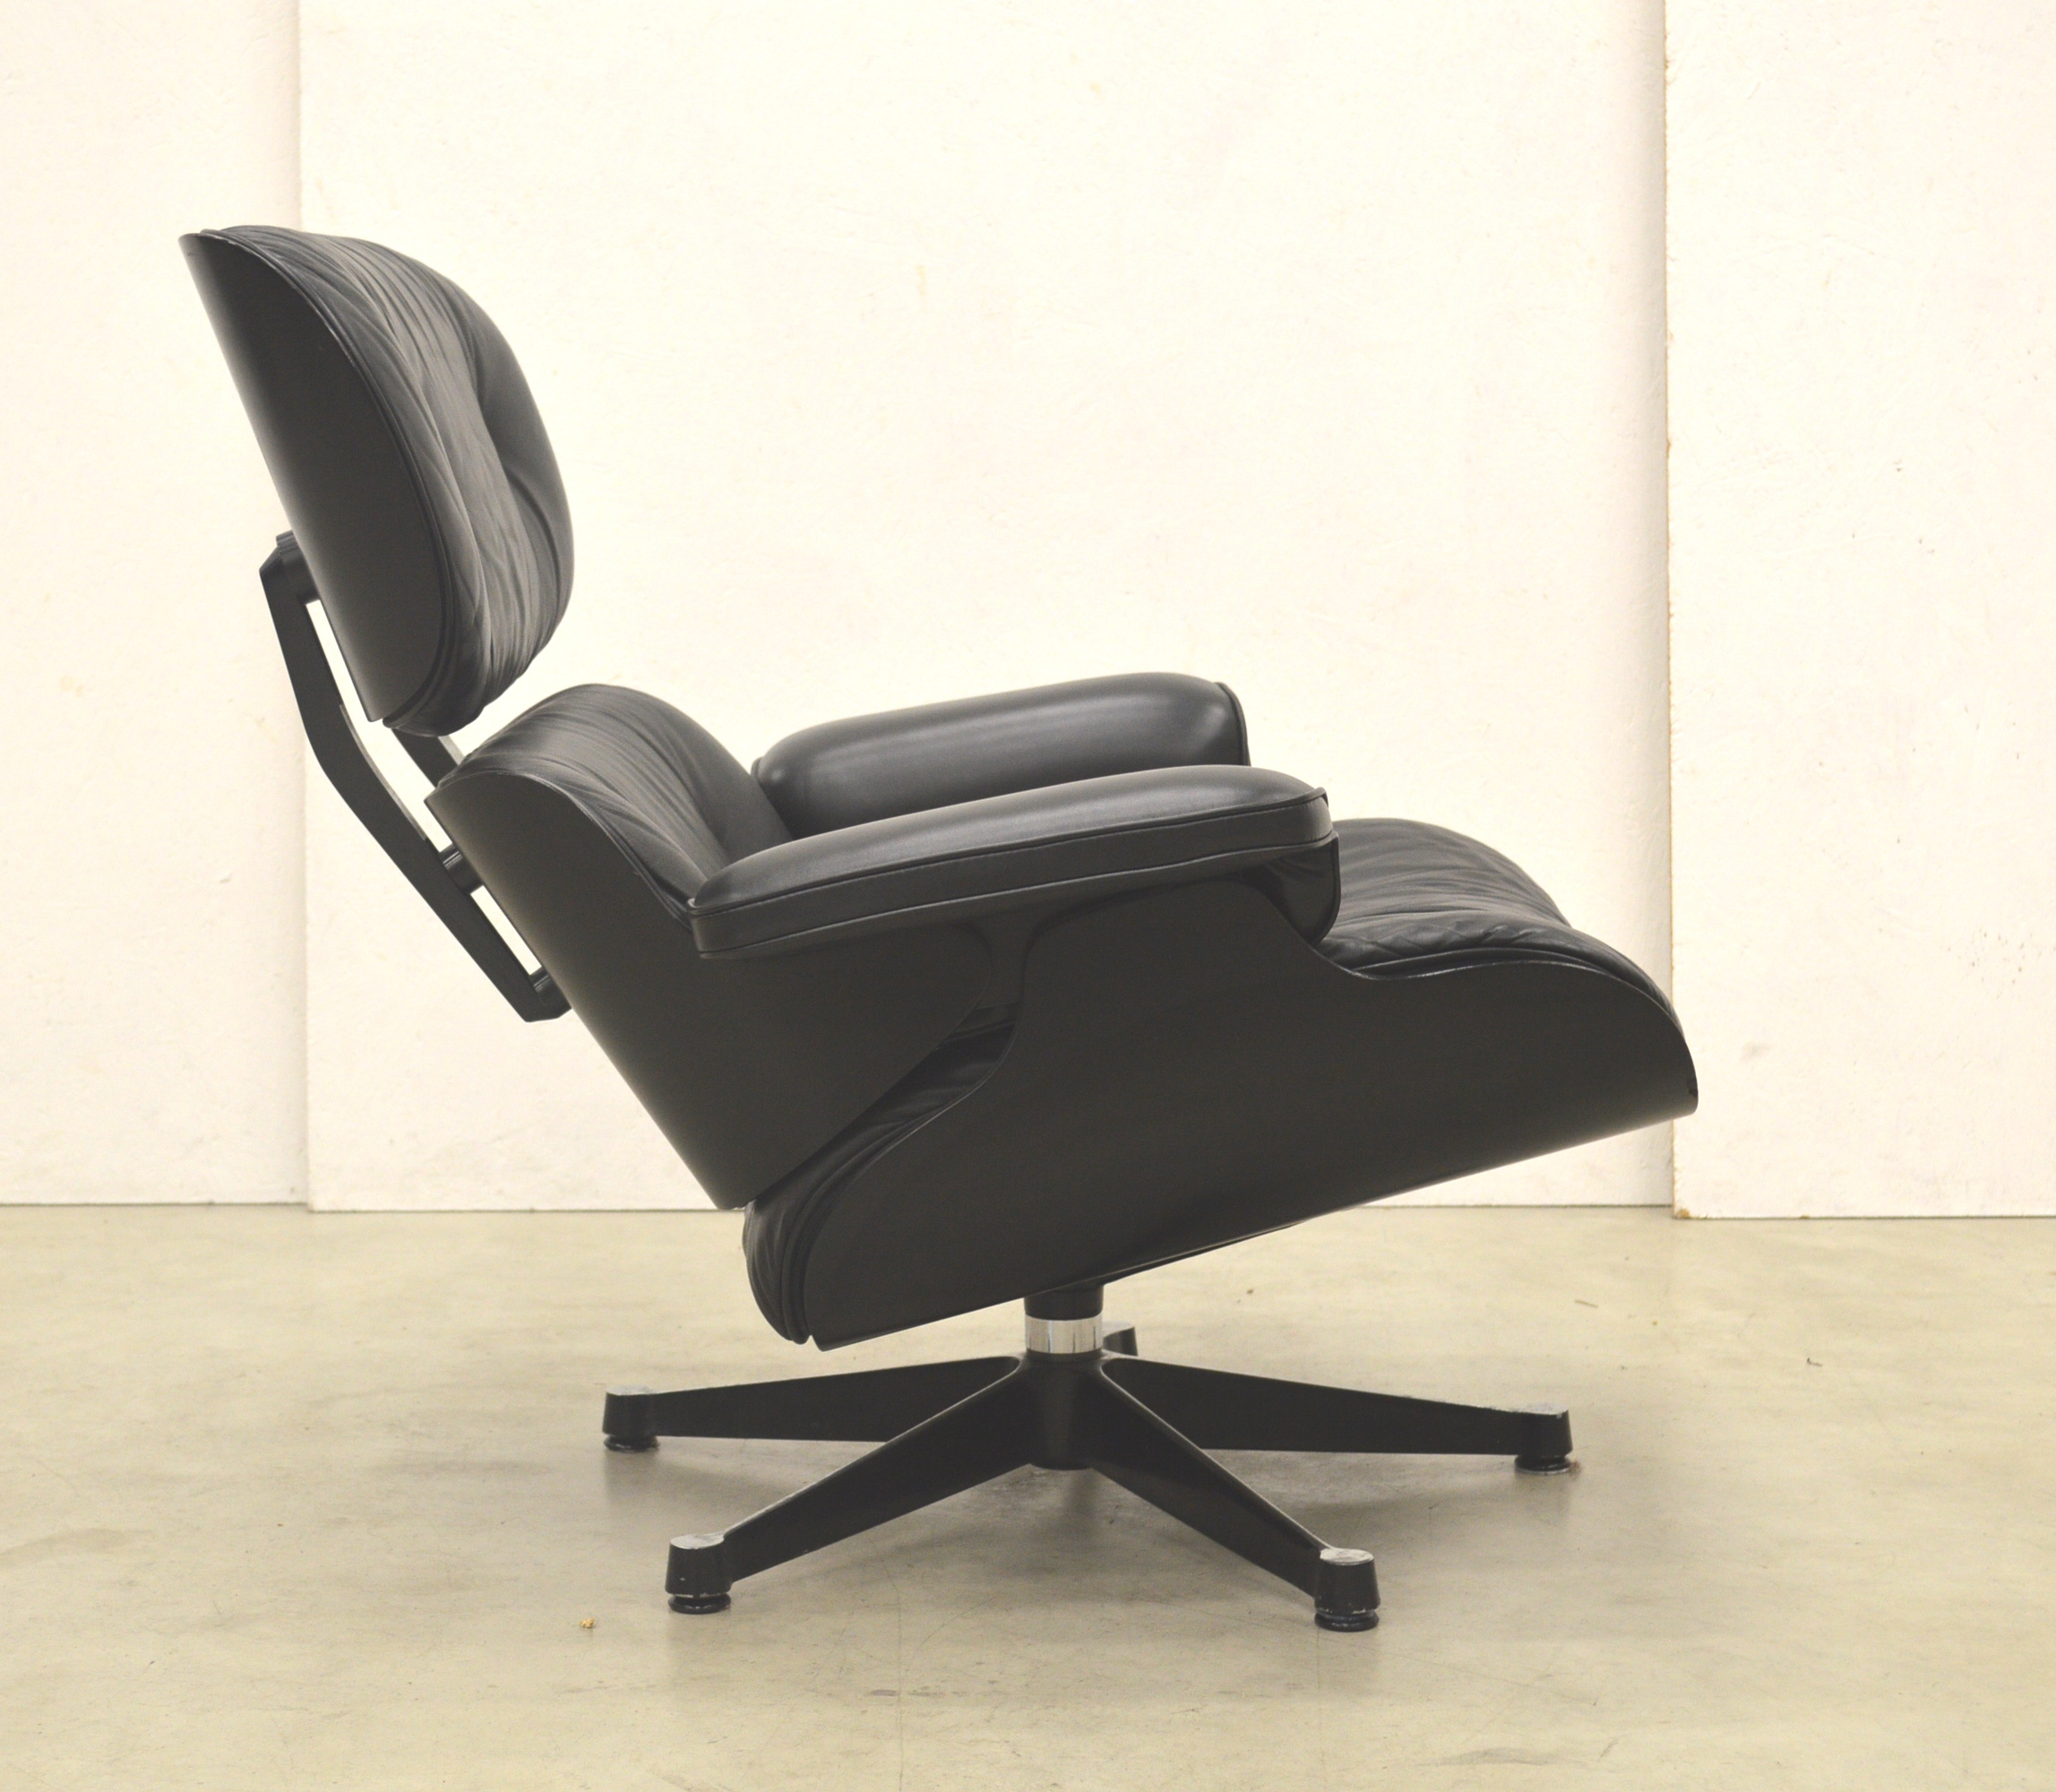 Vitra Eames Lounge Chair Black Vitra Eames Lounge Chair Black Edition Interior Aksel